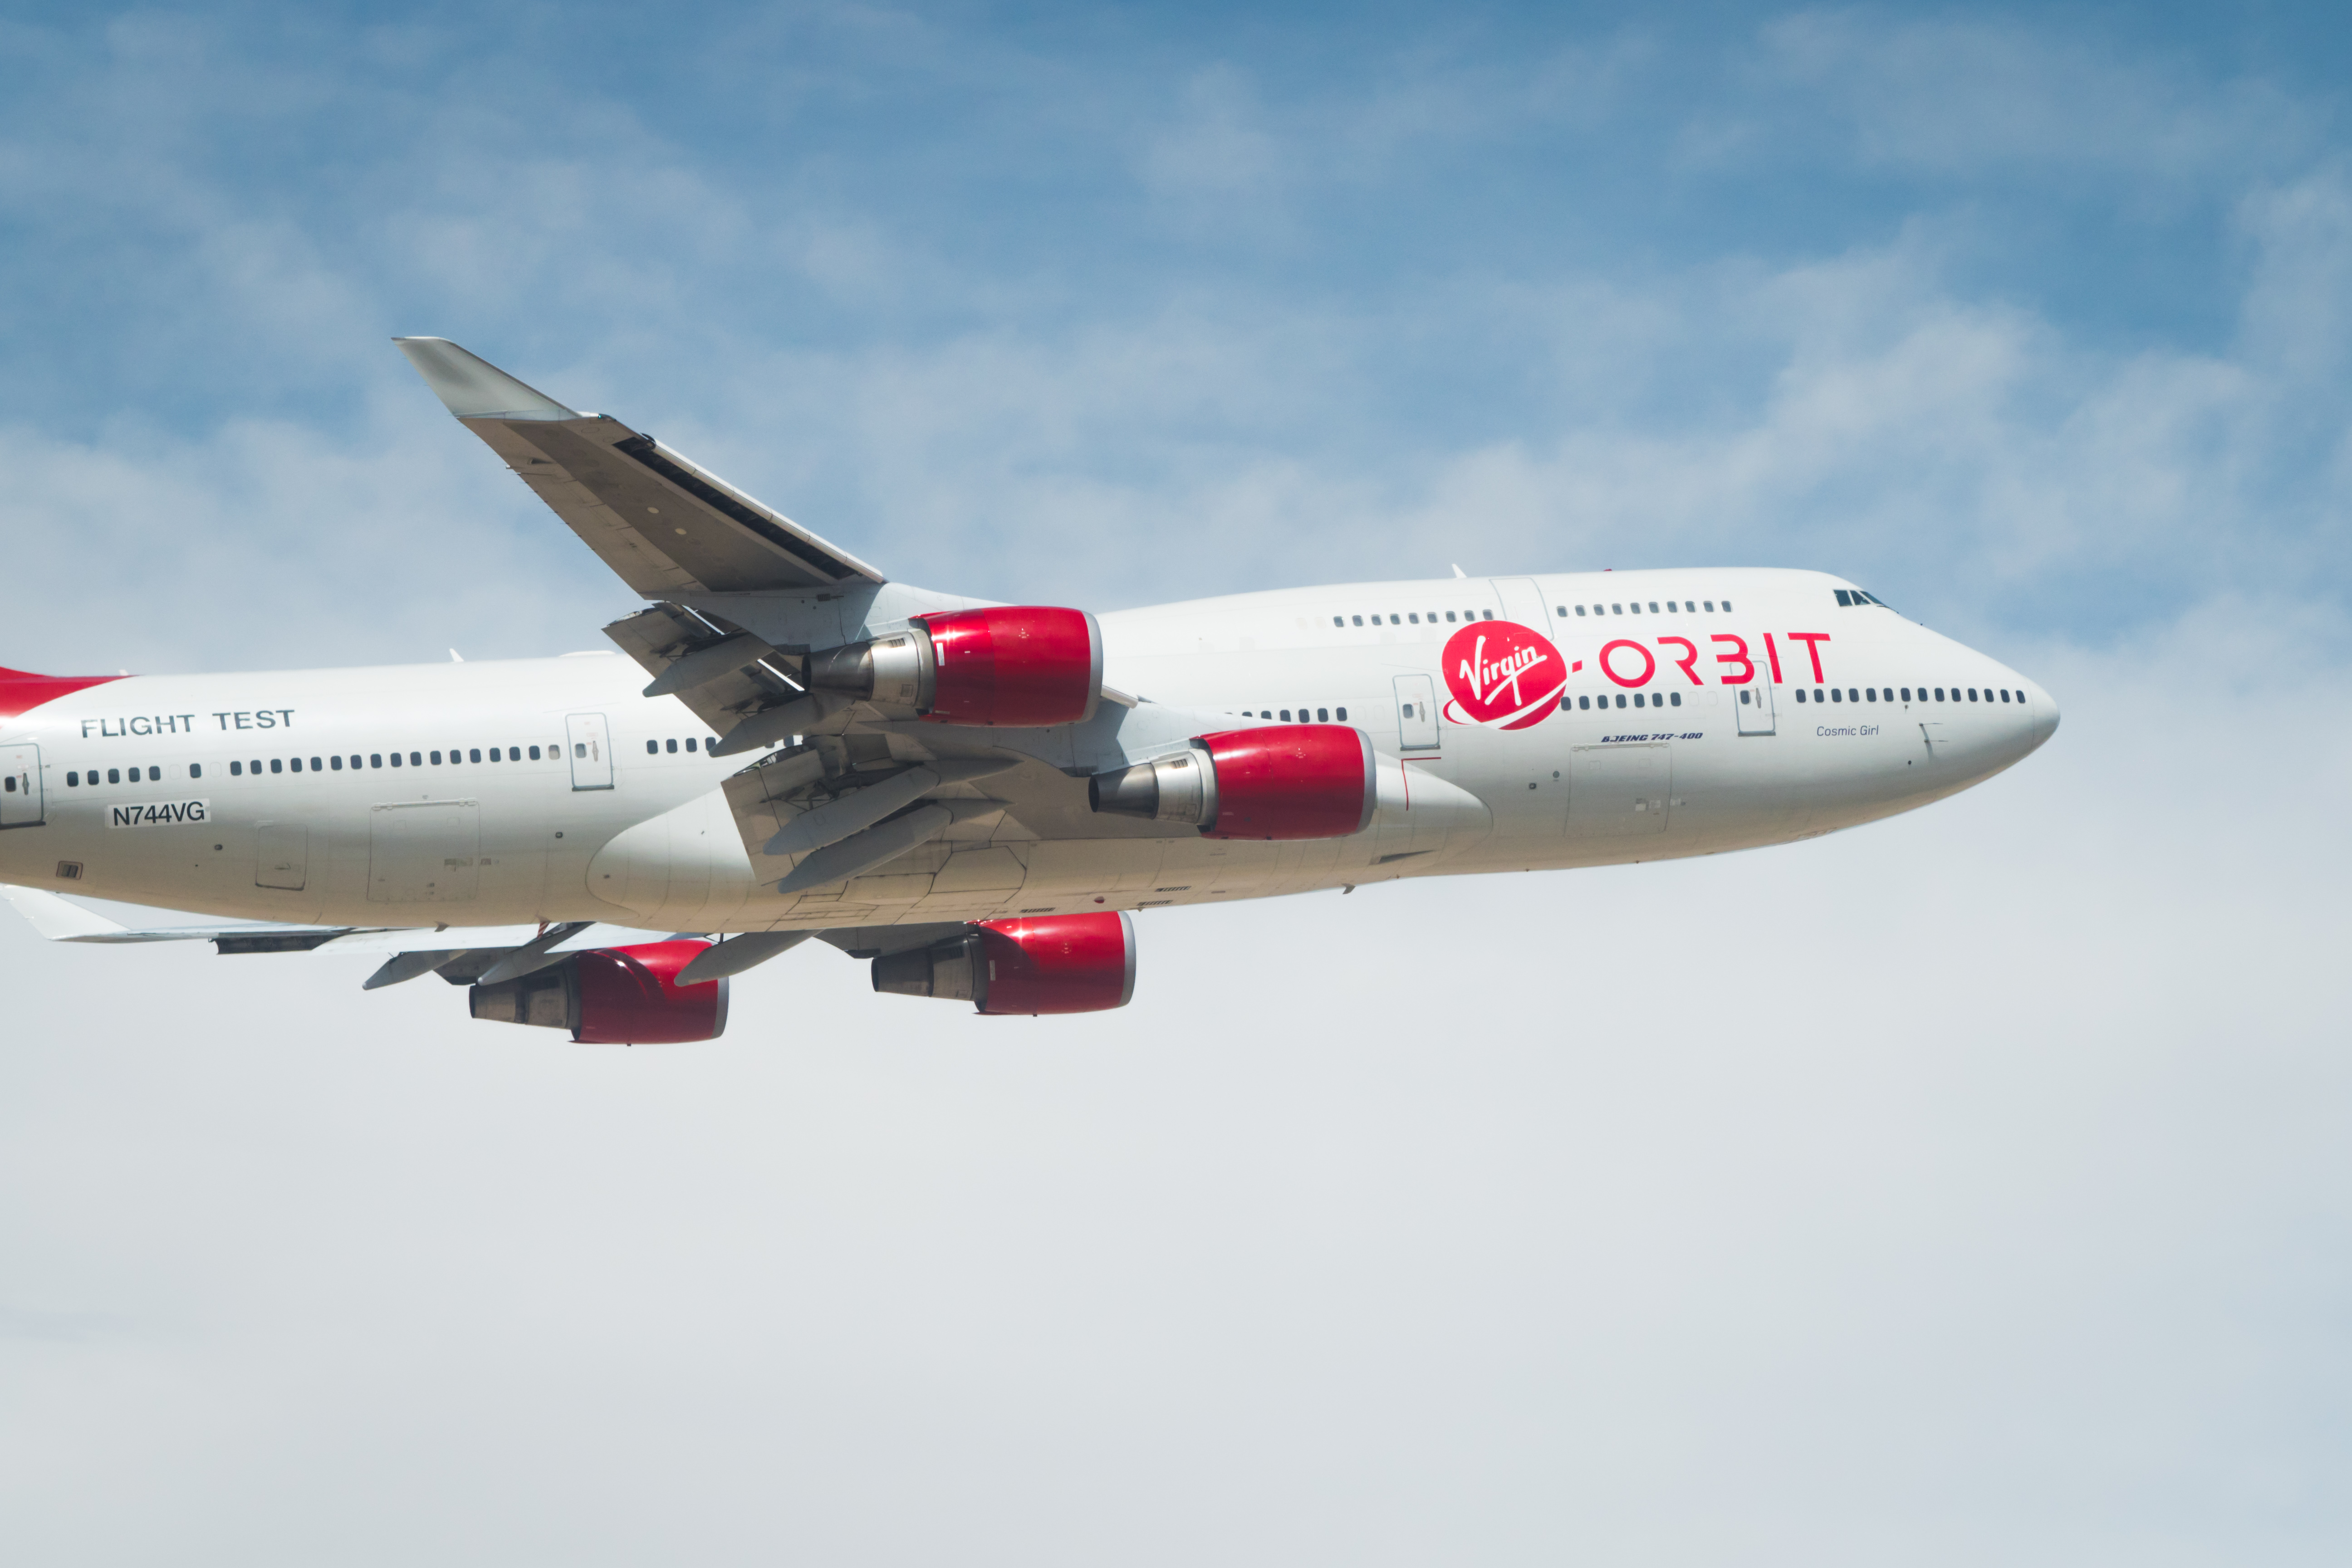 Virgin Orbit launches 9 satellites